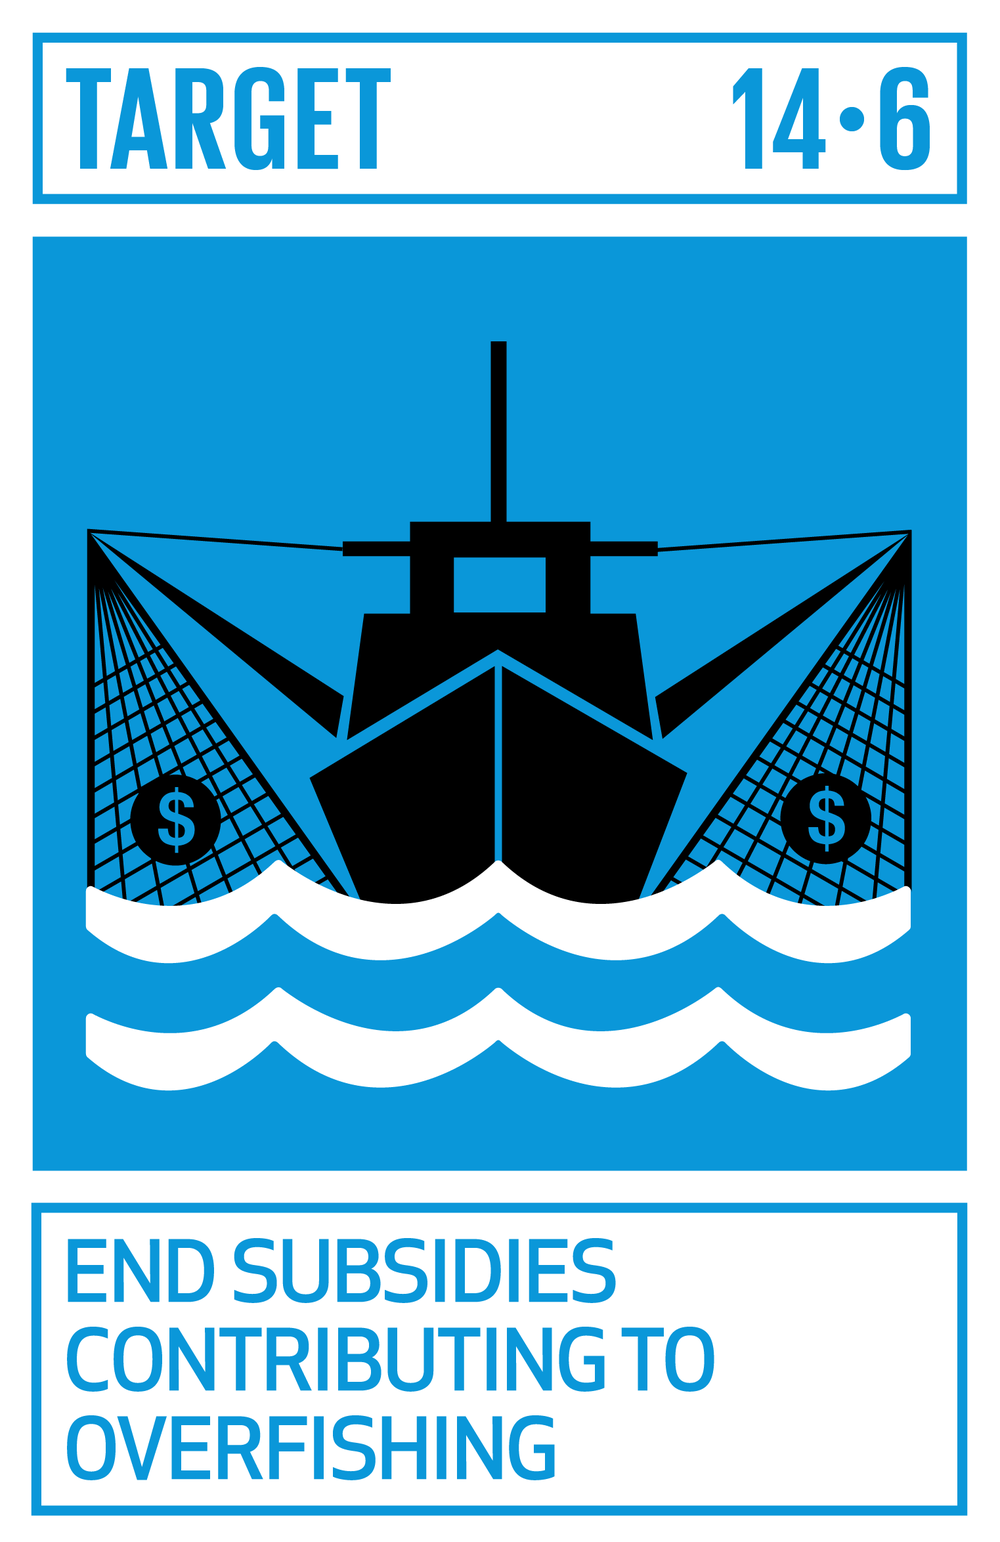 By 2020, prohibit certain forms of fisheries subsidies which contribute to overcapacity and overfishing, eliminate subsidies that contribute to illegal, unreported and unregulated fishing and refrain from introducing new such subsidies, recognizing that appropriate and effective special and differential treatment for developing and least developed countries should be an integral part of the World Trade Organization fisheries subsidies negotiation.   INDICATOR    14.6.1  Progress by countries in the degree of implementation of international instruments aiming to combat illegal, unreported and unregulated fishing